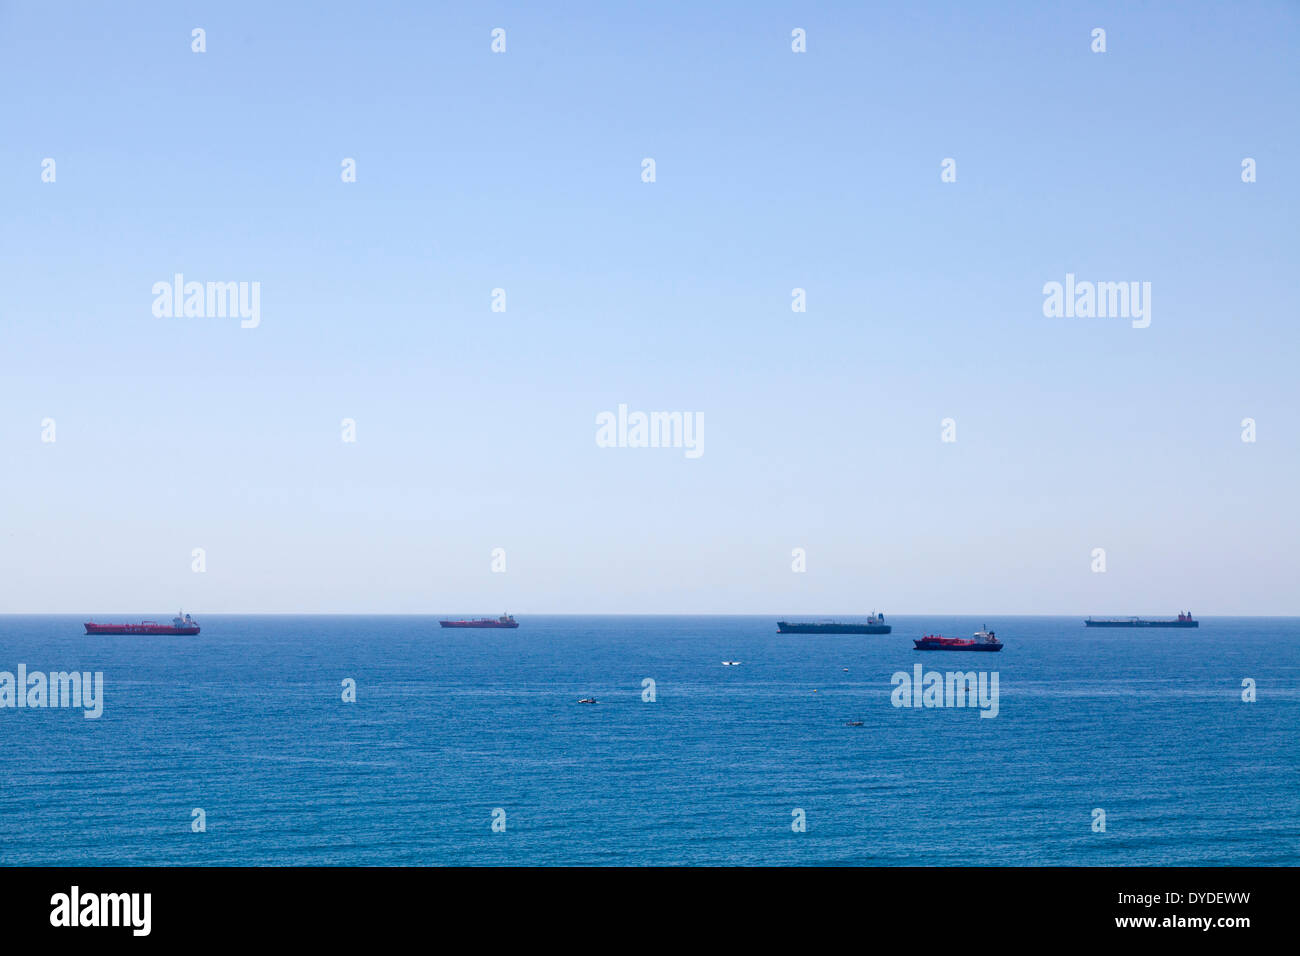 Tankers and container ships passing off Tarragona in the Mediterranean. - Stock Image